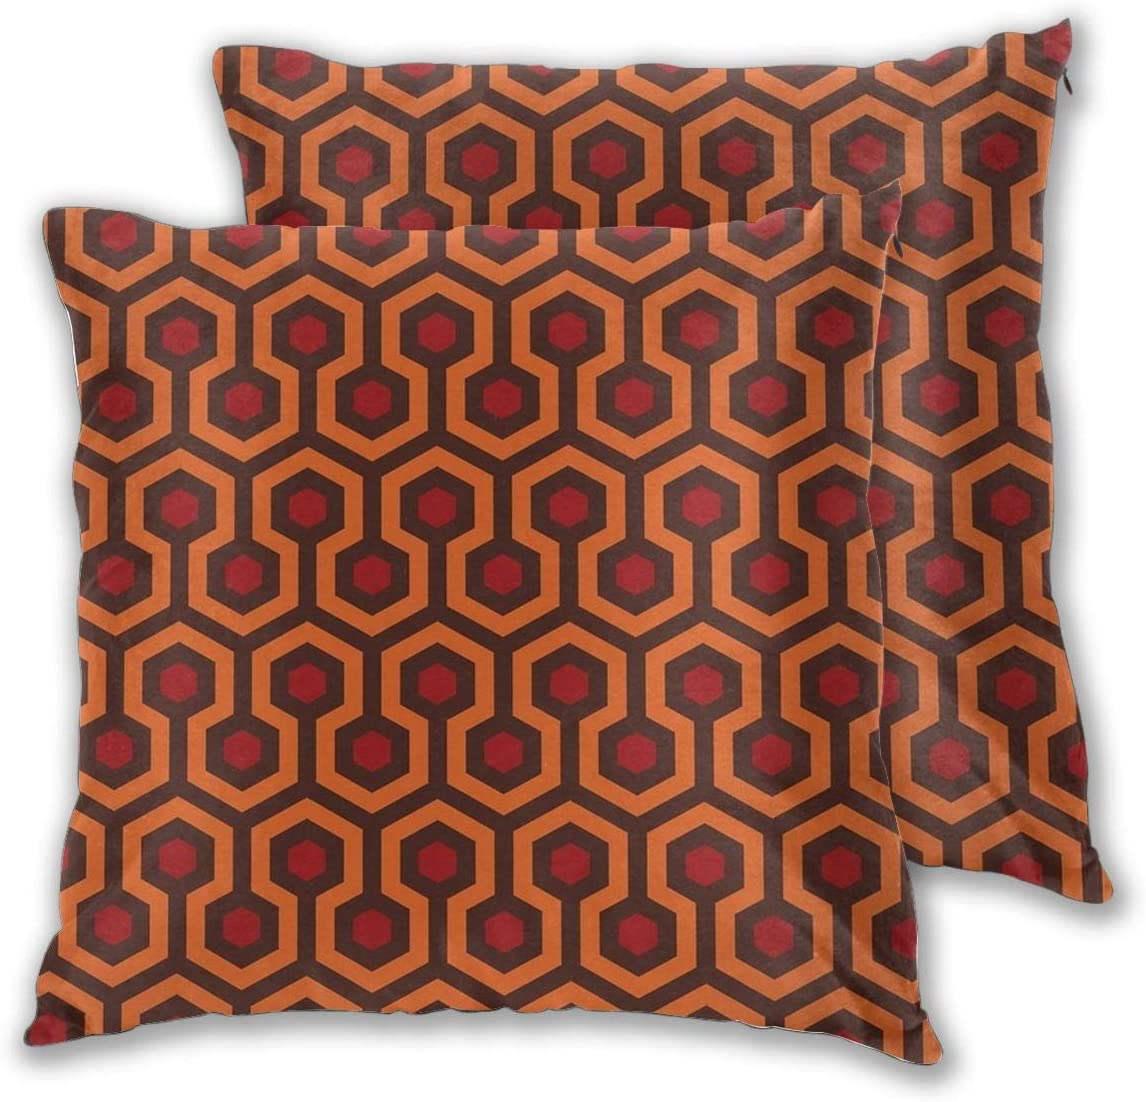 Nonebrand Throw Pillow Covers,The Shining Overlook Hotel Carpet Modern Decorative Pillowcase Double Side Print Cushion Covers for Sofa Couch Bed 18x18 Inches,Set of 2